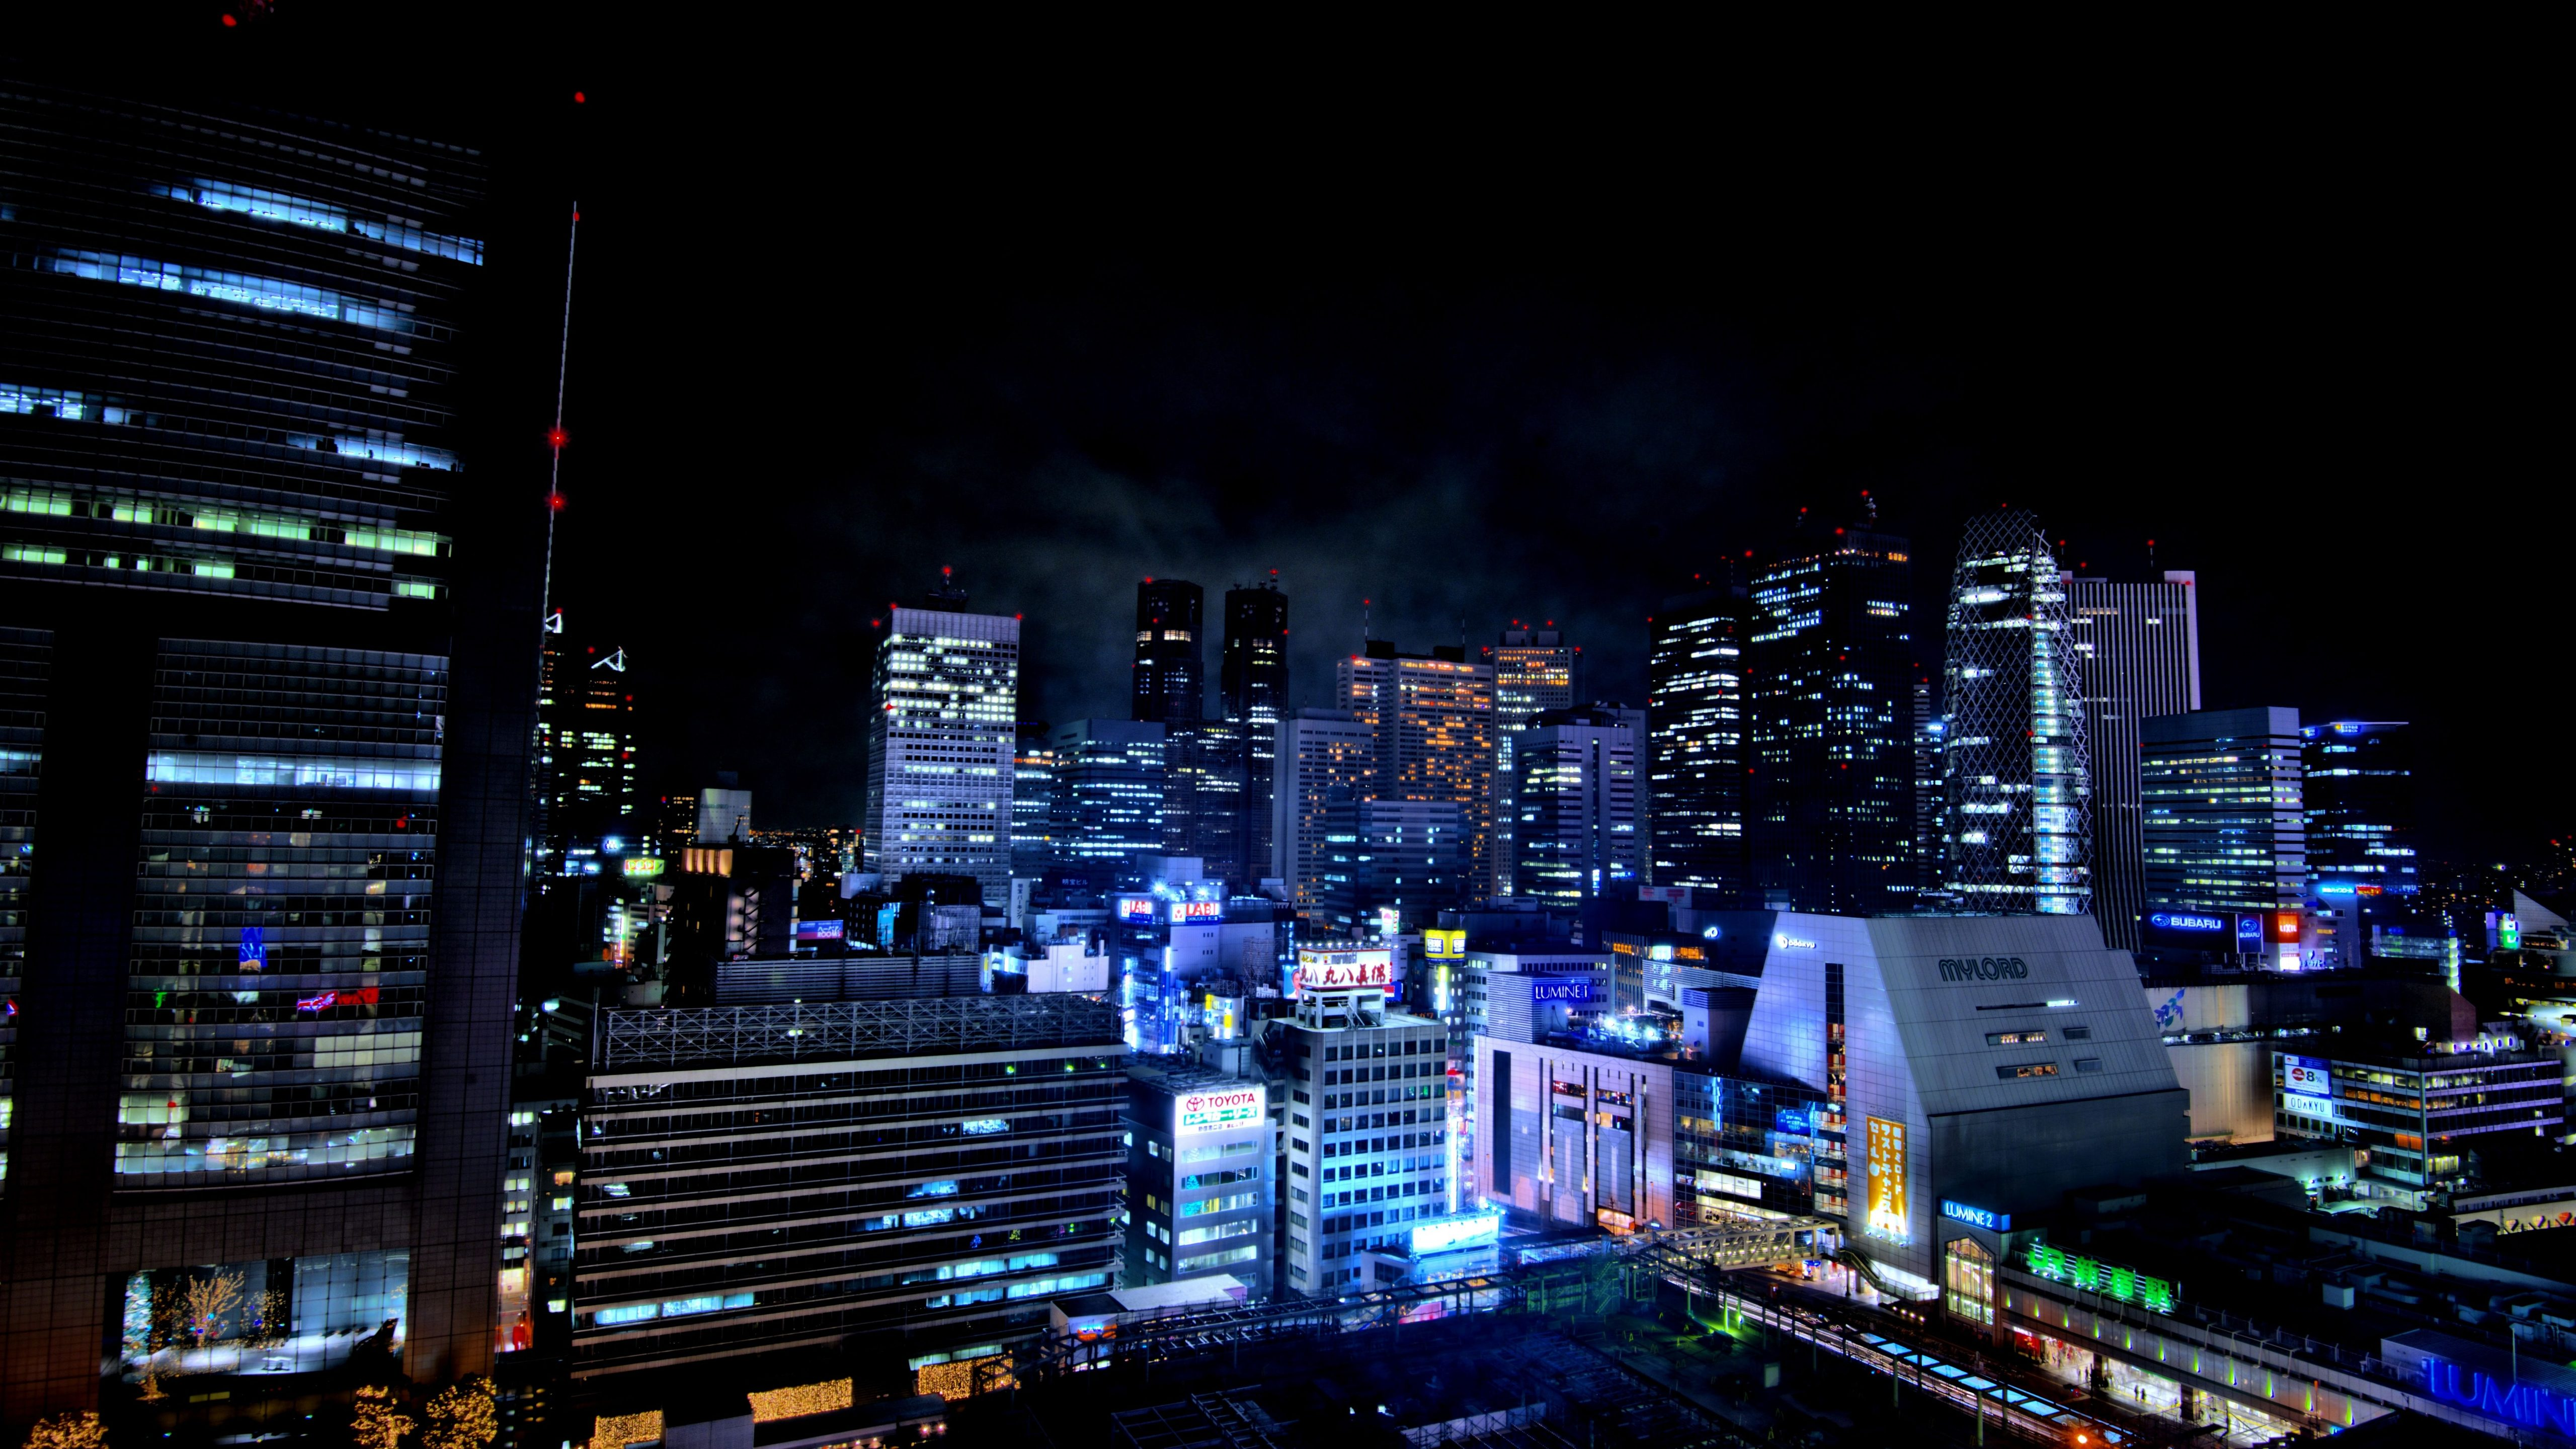 Cute But Psycho Iphone Wallpaper Tokyo At Night Japan 7k Uhd Wallpaper